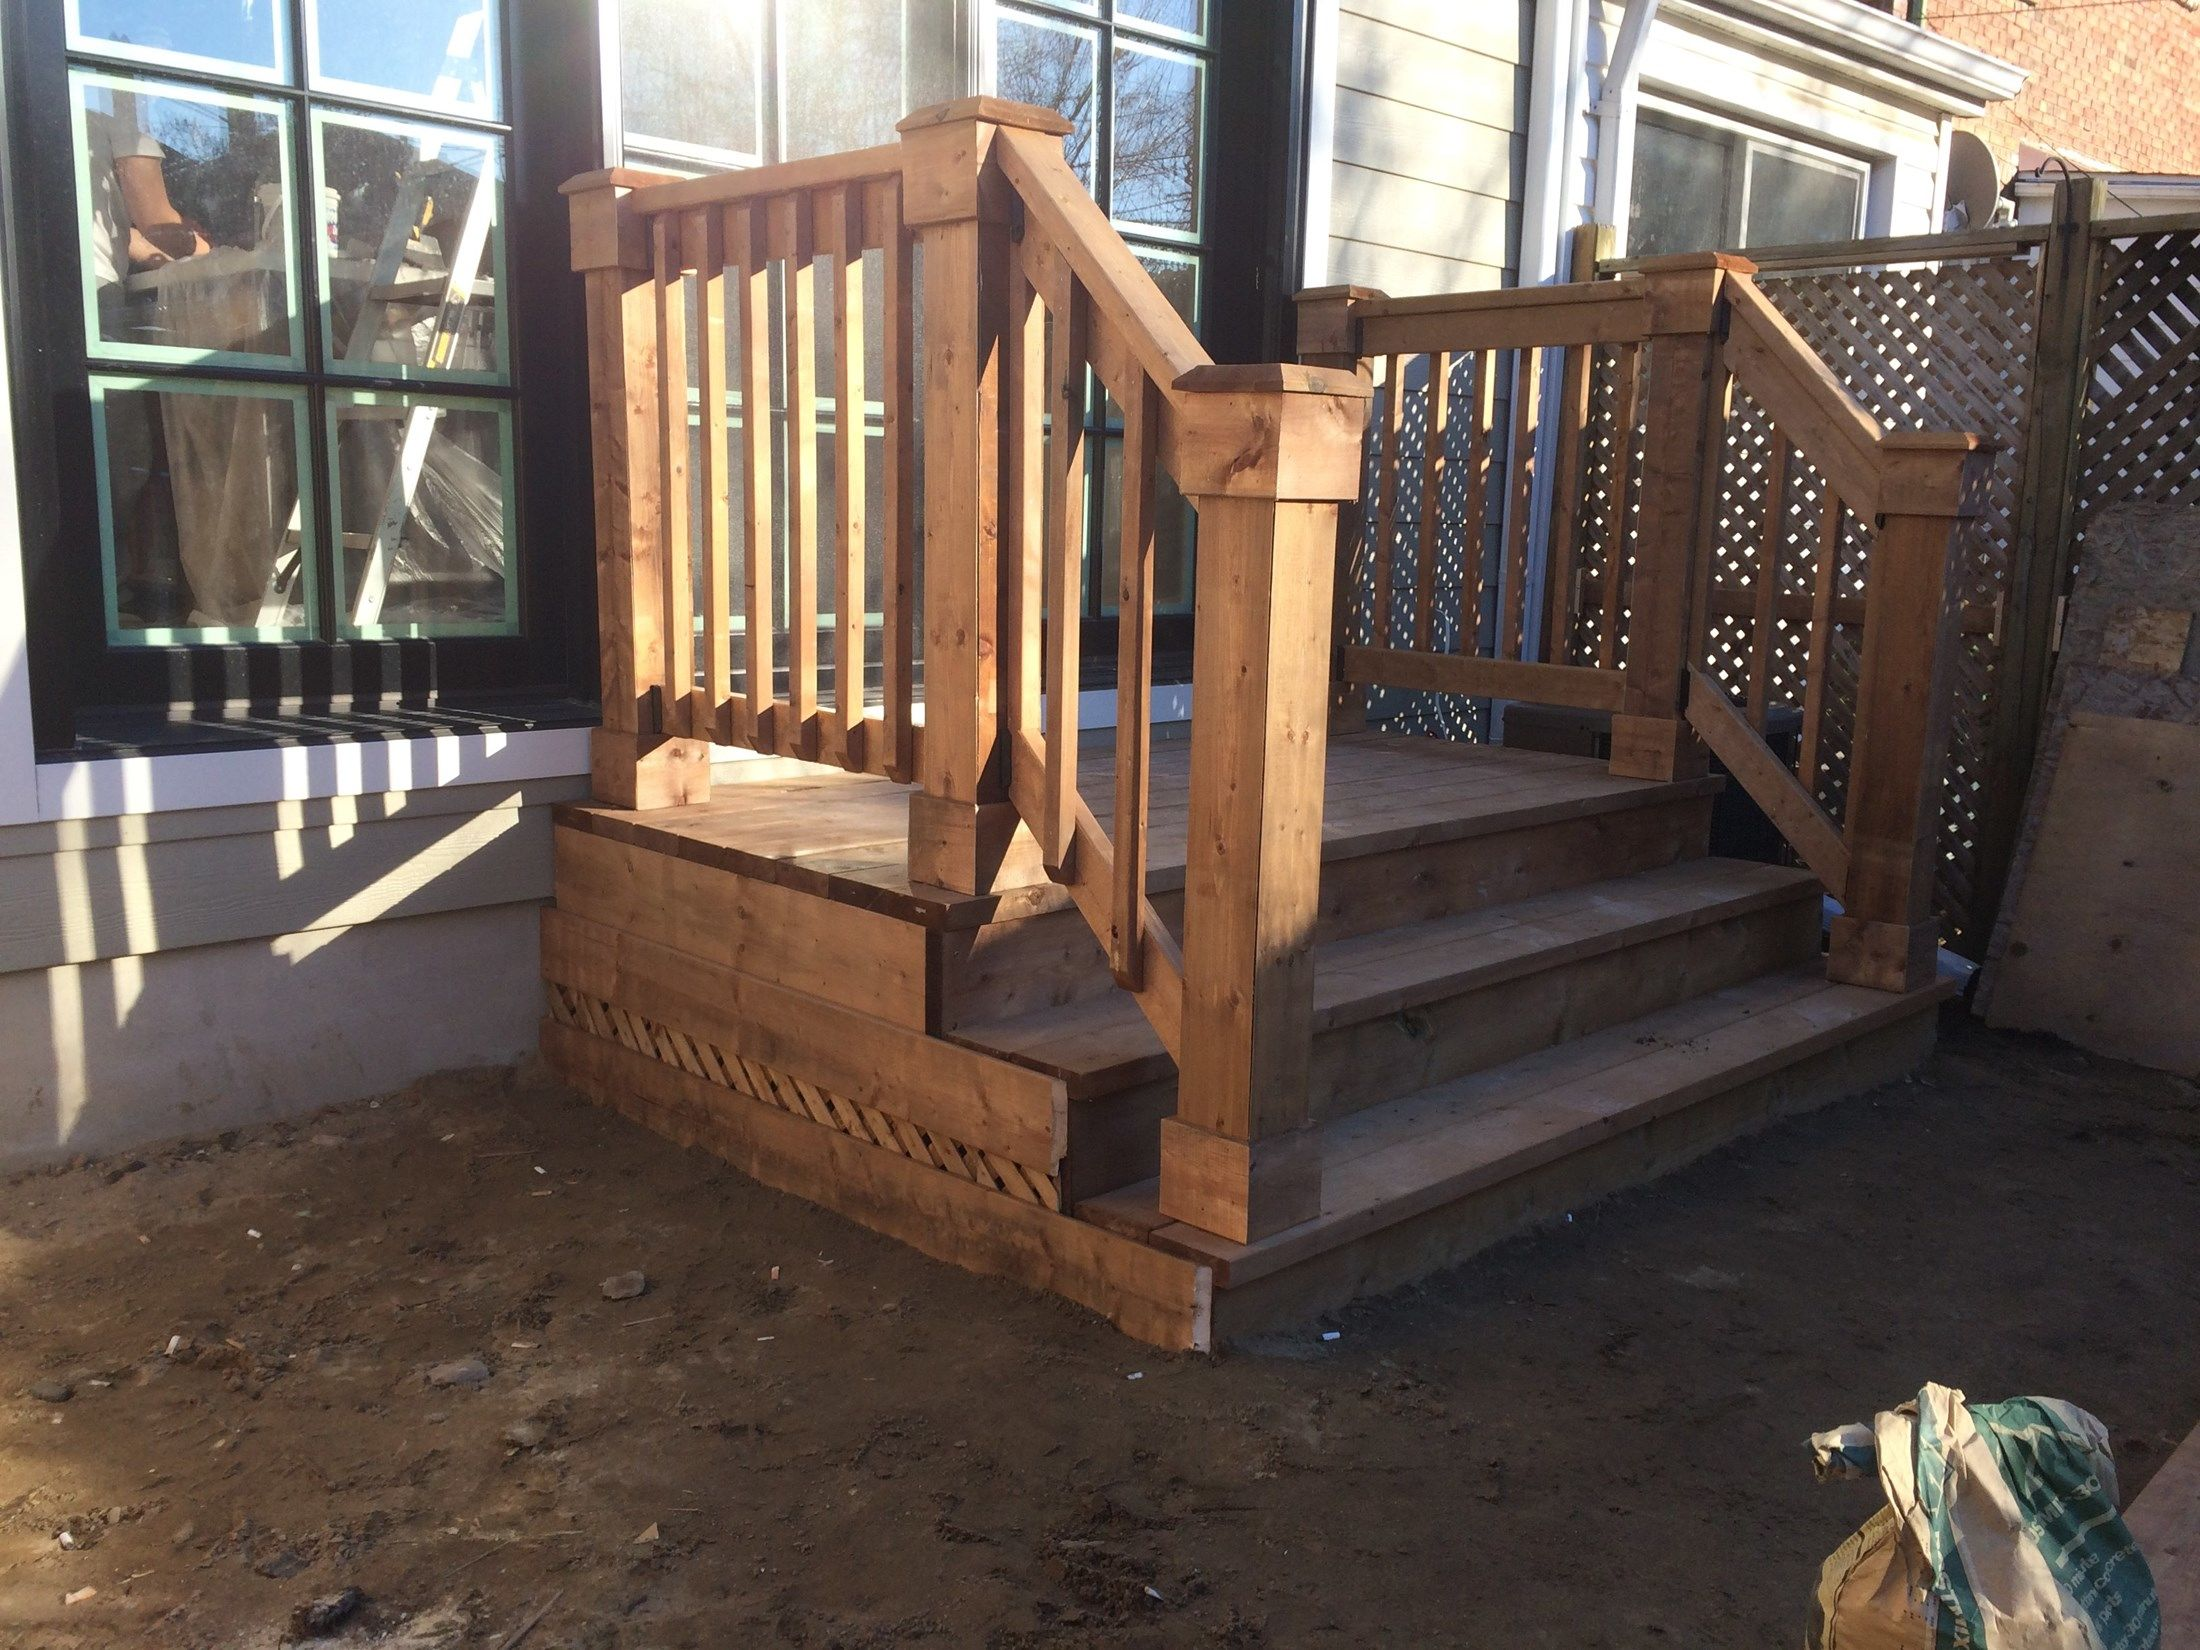 Walk out deck - Picture 7155